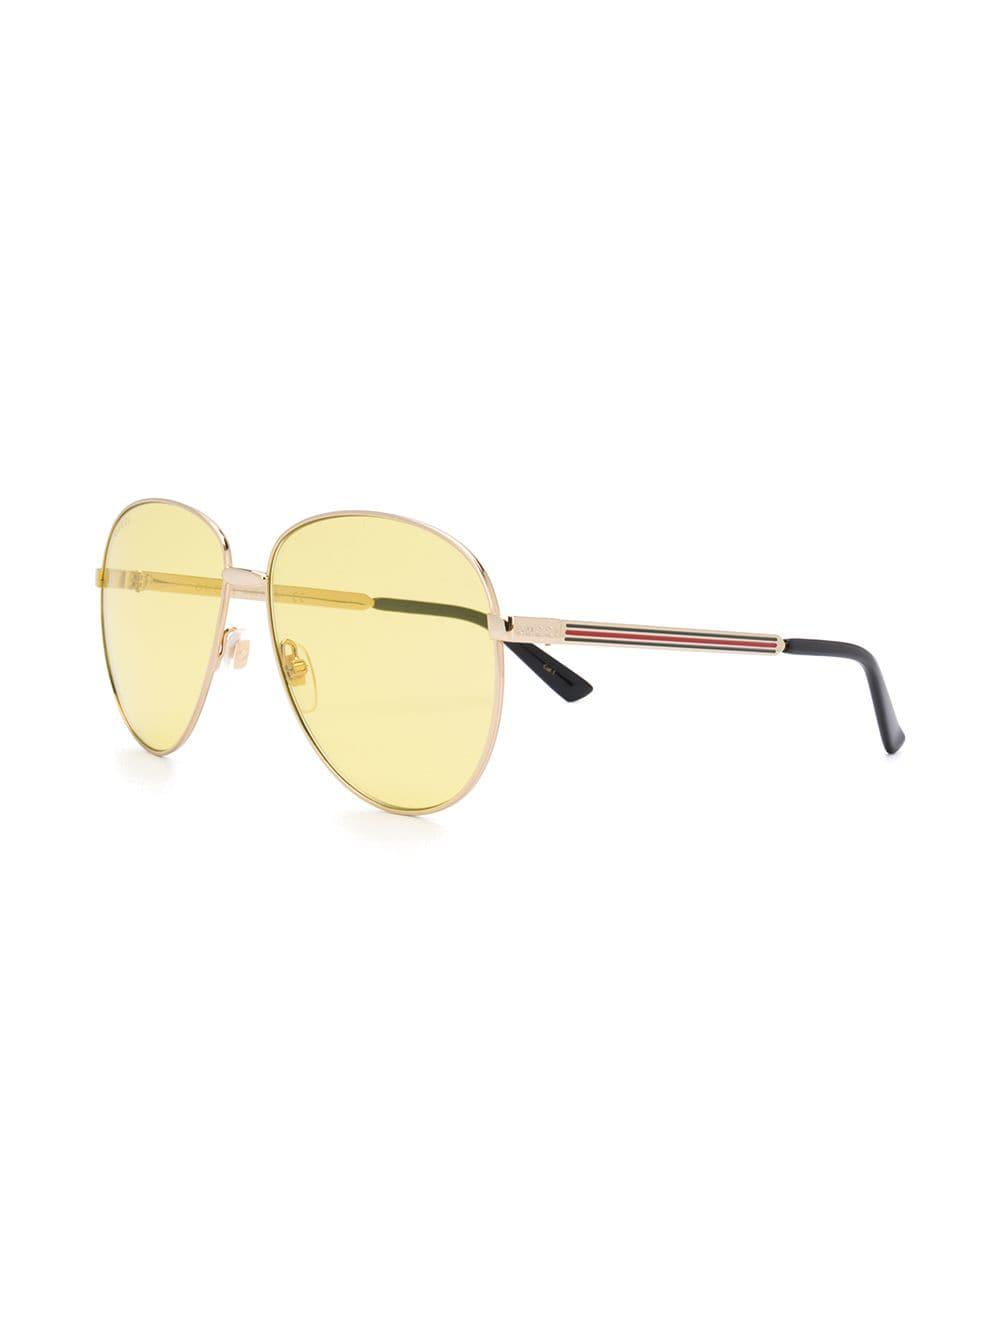 61fba50a5ae Gucci Aviator-style Sunglasses in Metallic for Men - Lyst